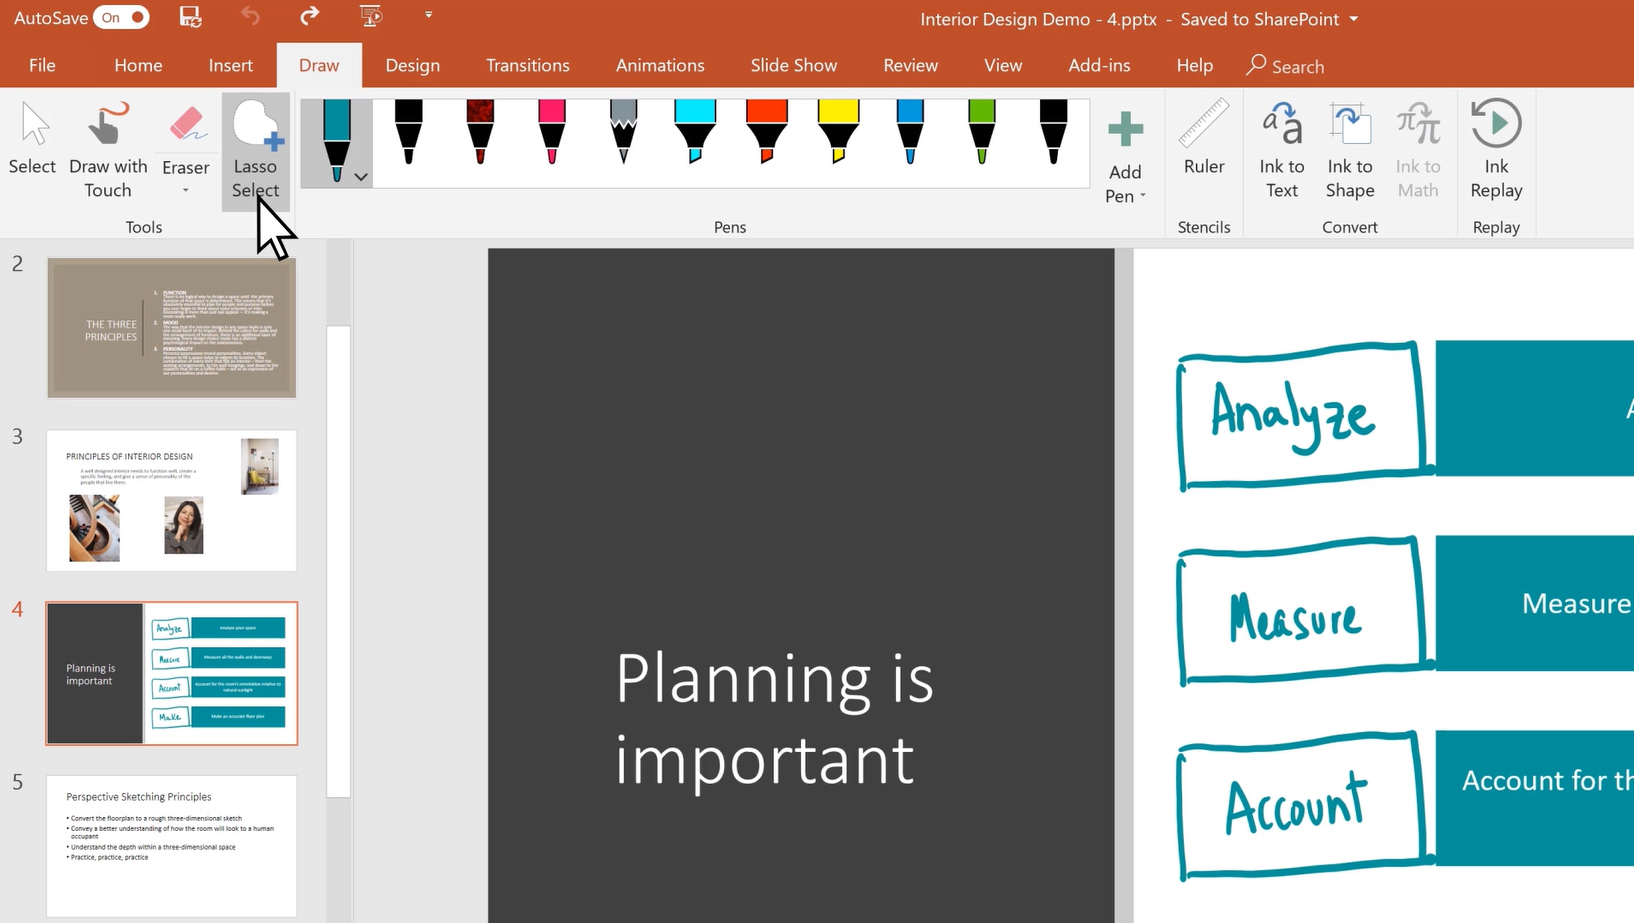 Office-365-Preview mit diversen Neuerungen